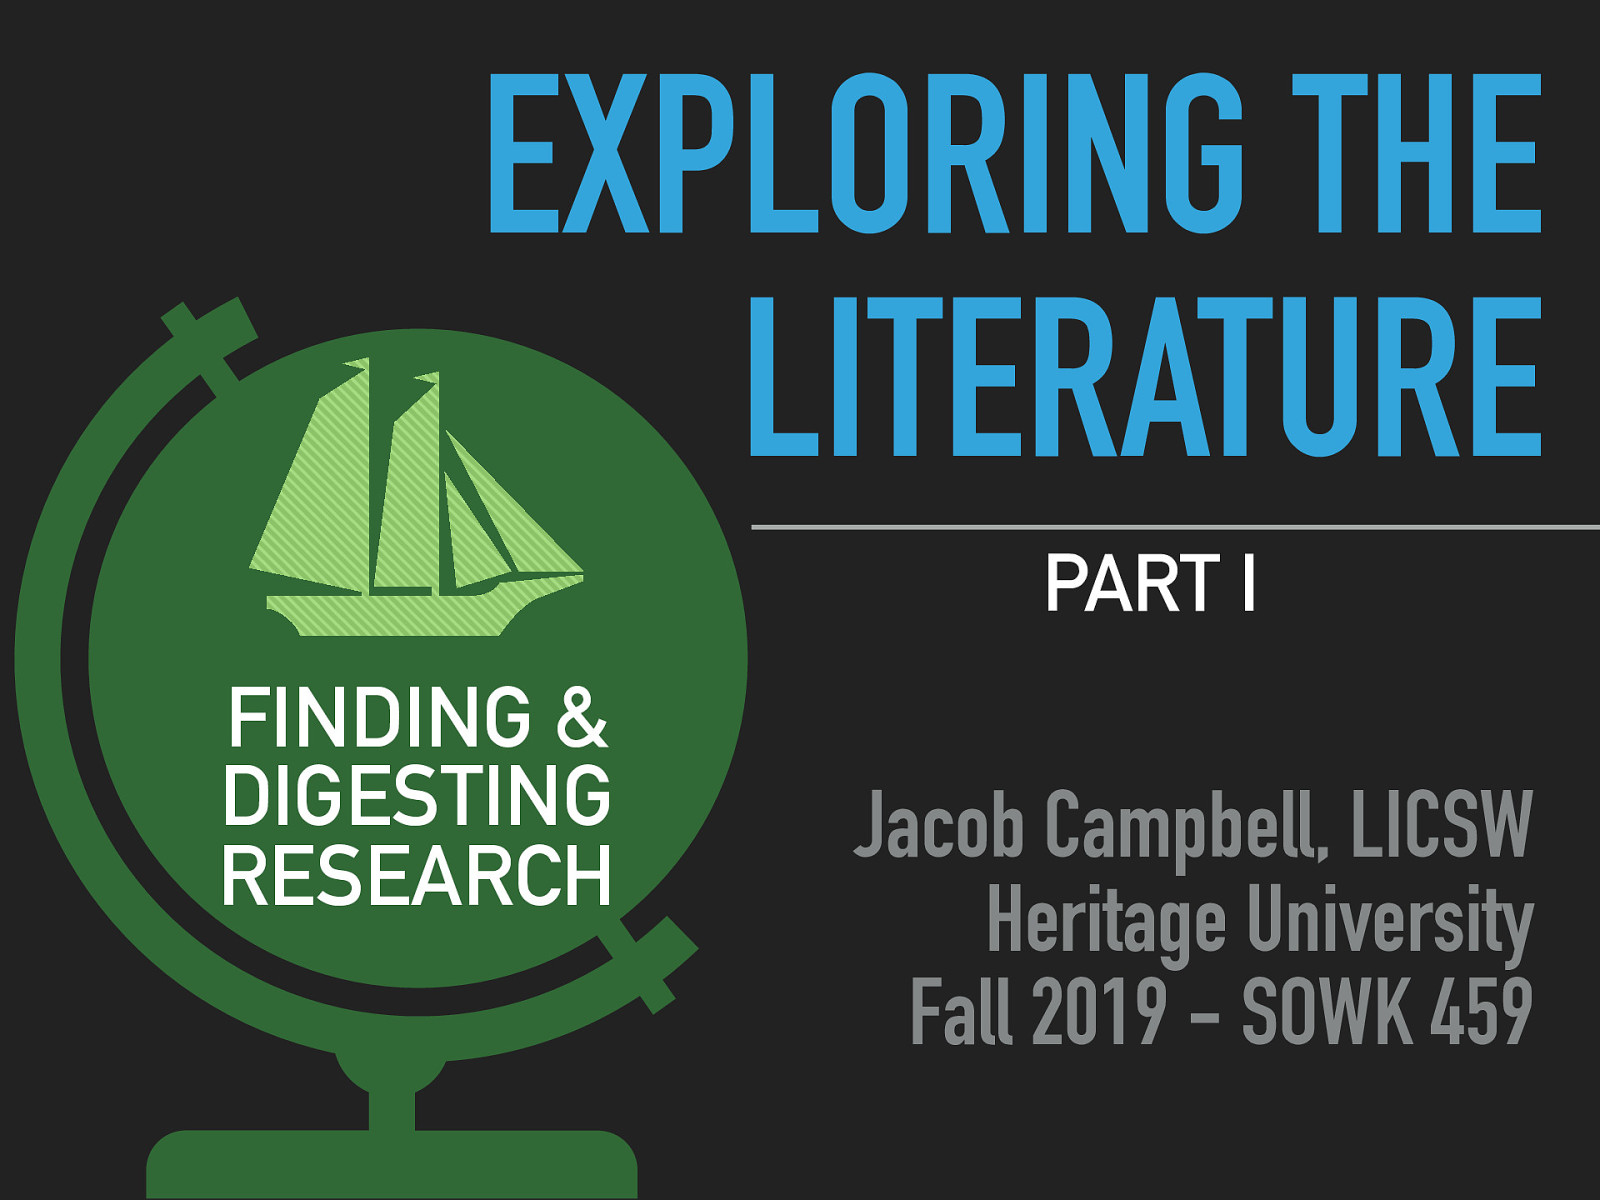 Week 06 - Exploring the Literature Part I: Finding & Digesting Research